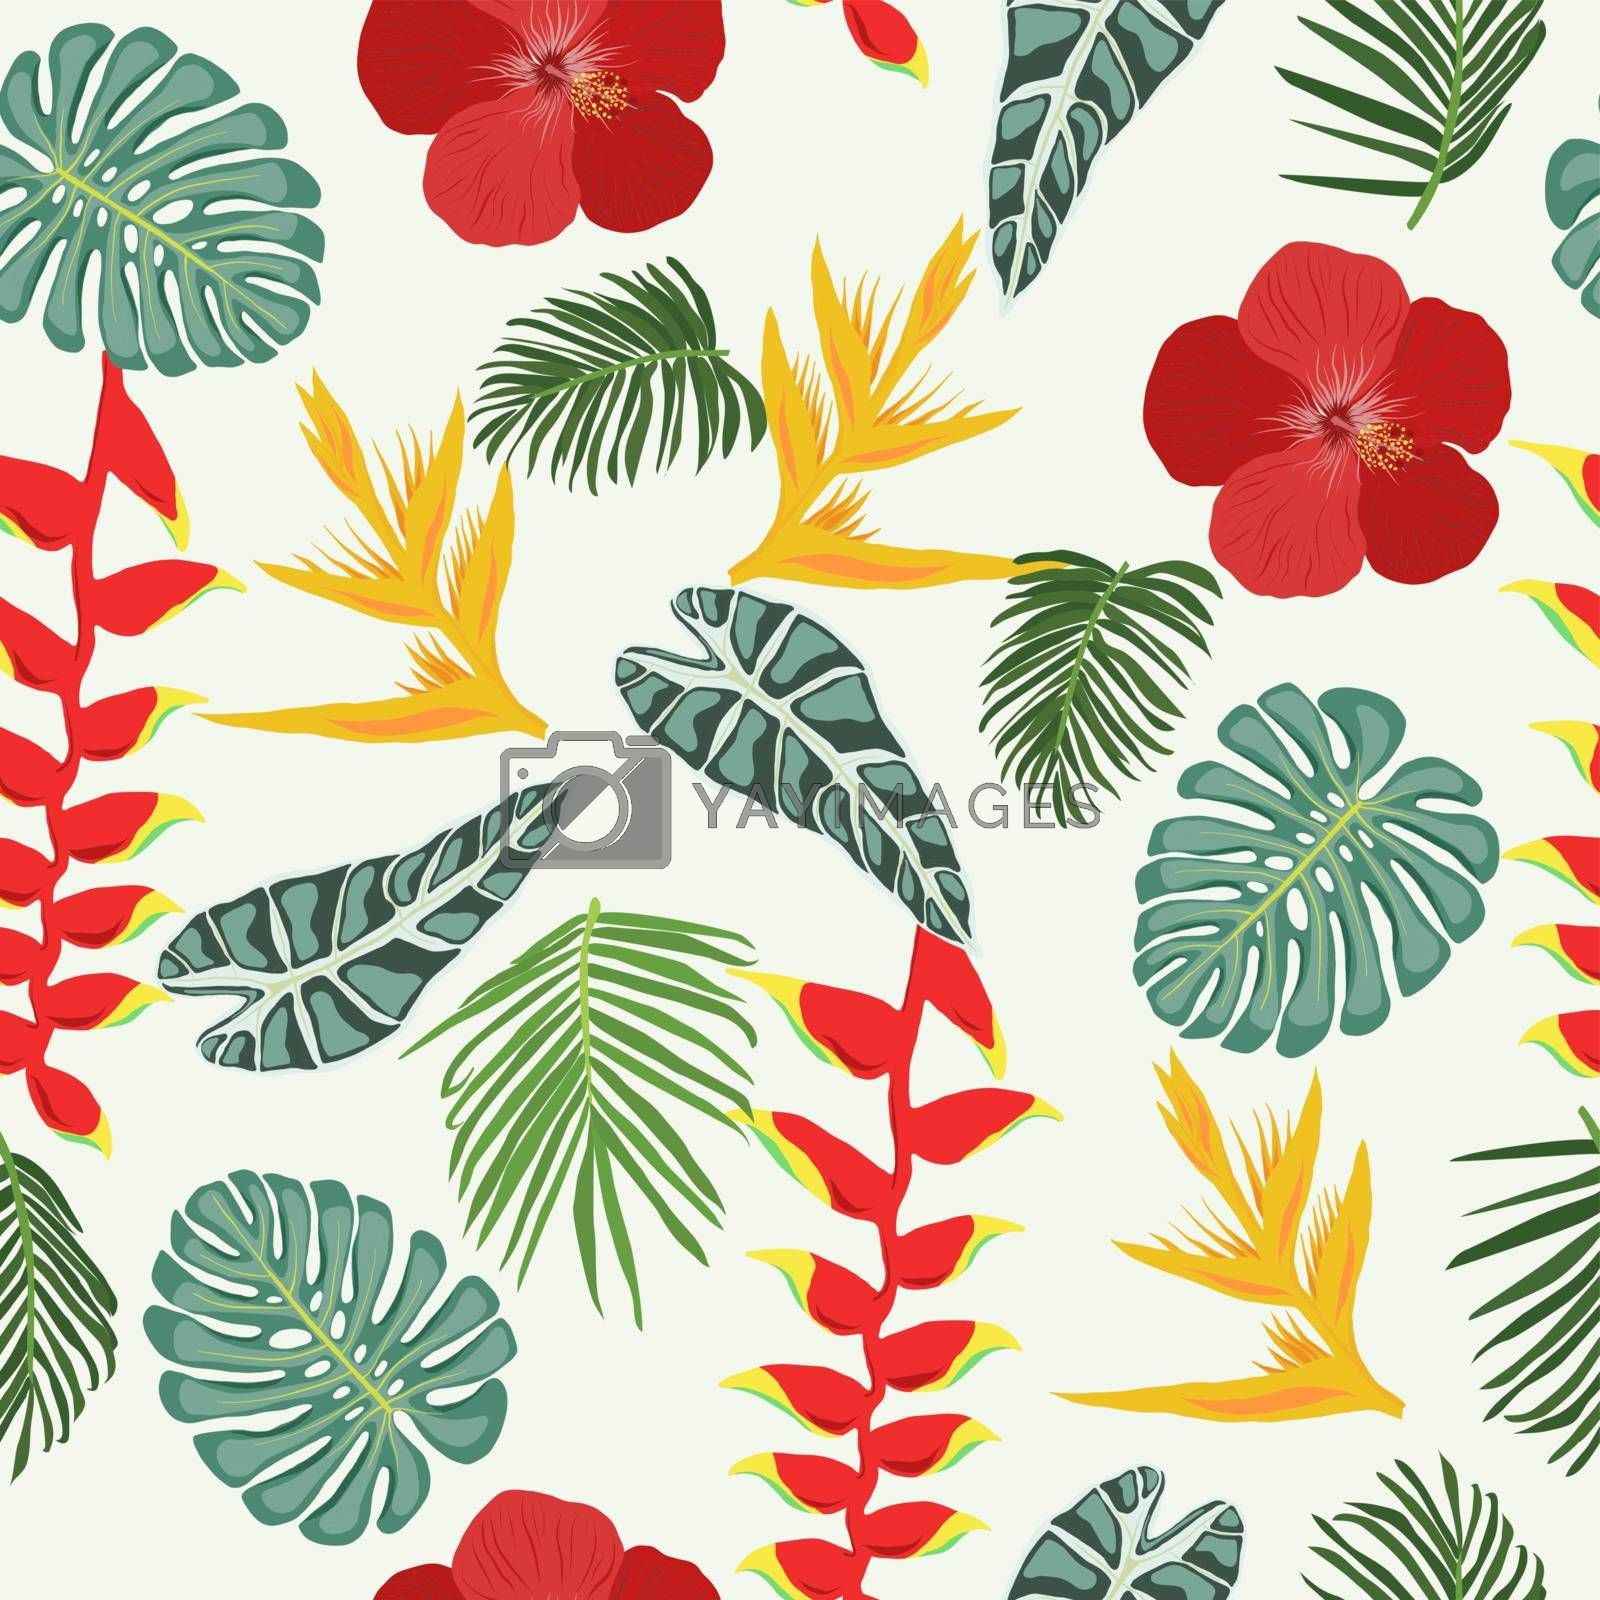 Seamless pattern with Tropical jungle leaves and flowers by Margolana